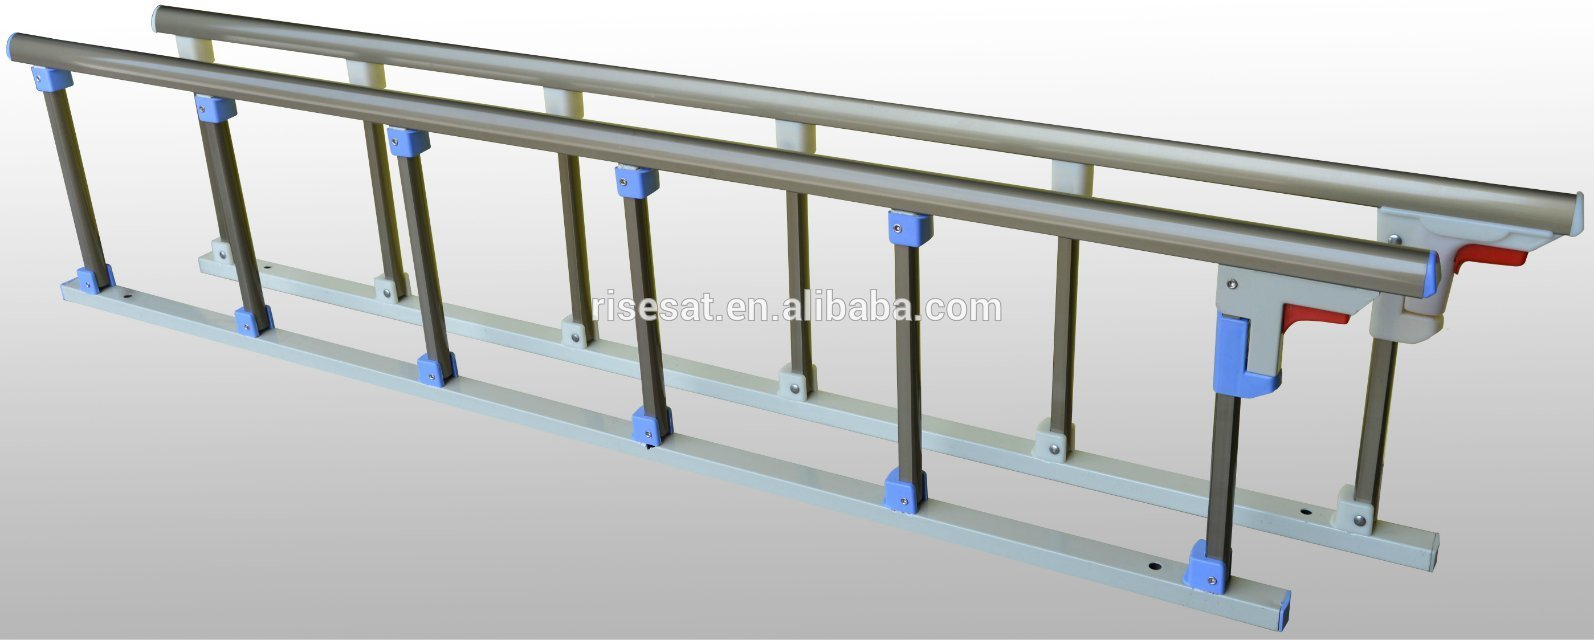 Stainless Steel Hospital Bed Side Rails , hospital bed folding guard rails - Stainless Steel Hospital Bed Side Rails,Hospital Bed Folding Guard